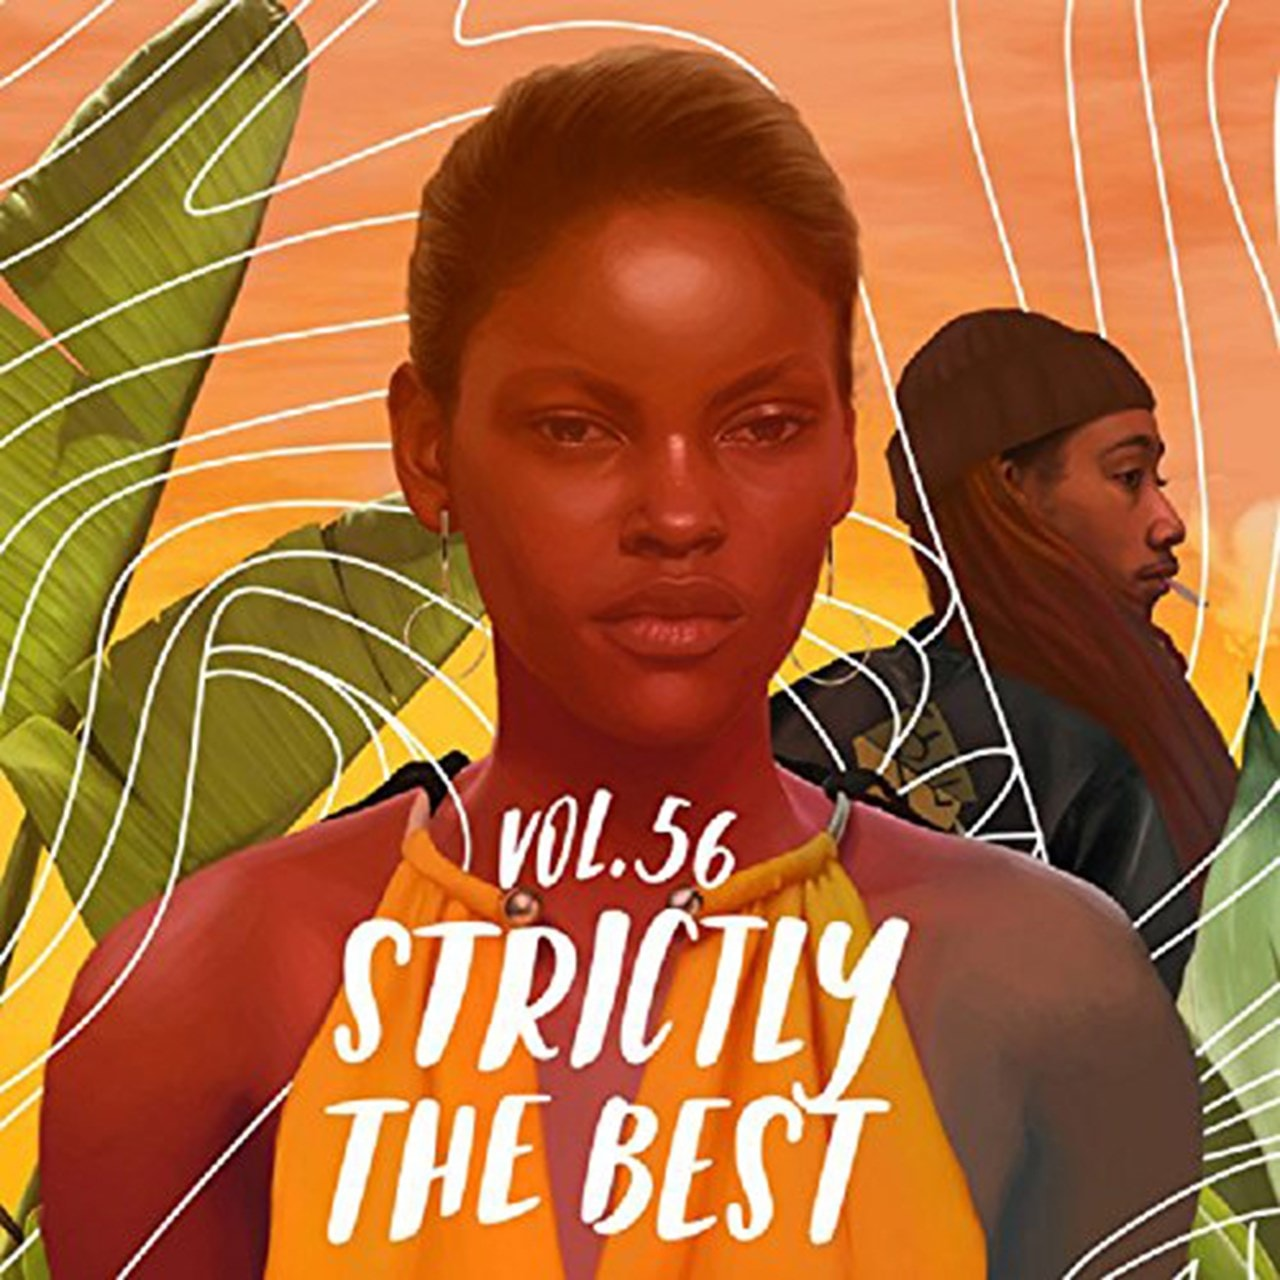 Strictly the Best - Volume 56 - 1